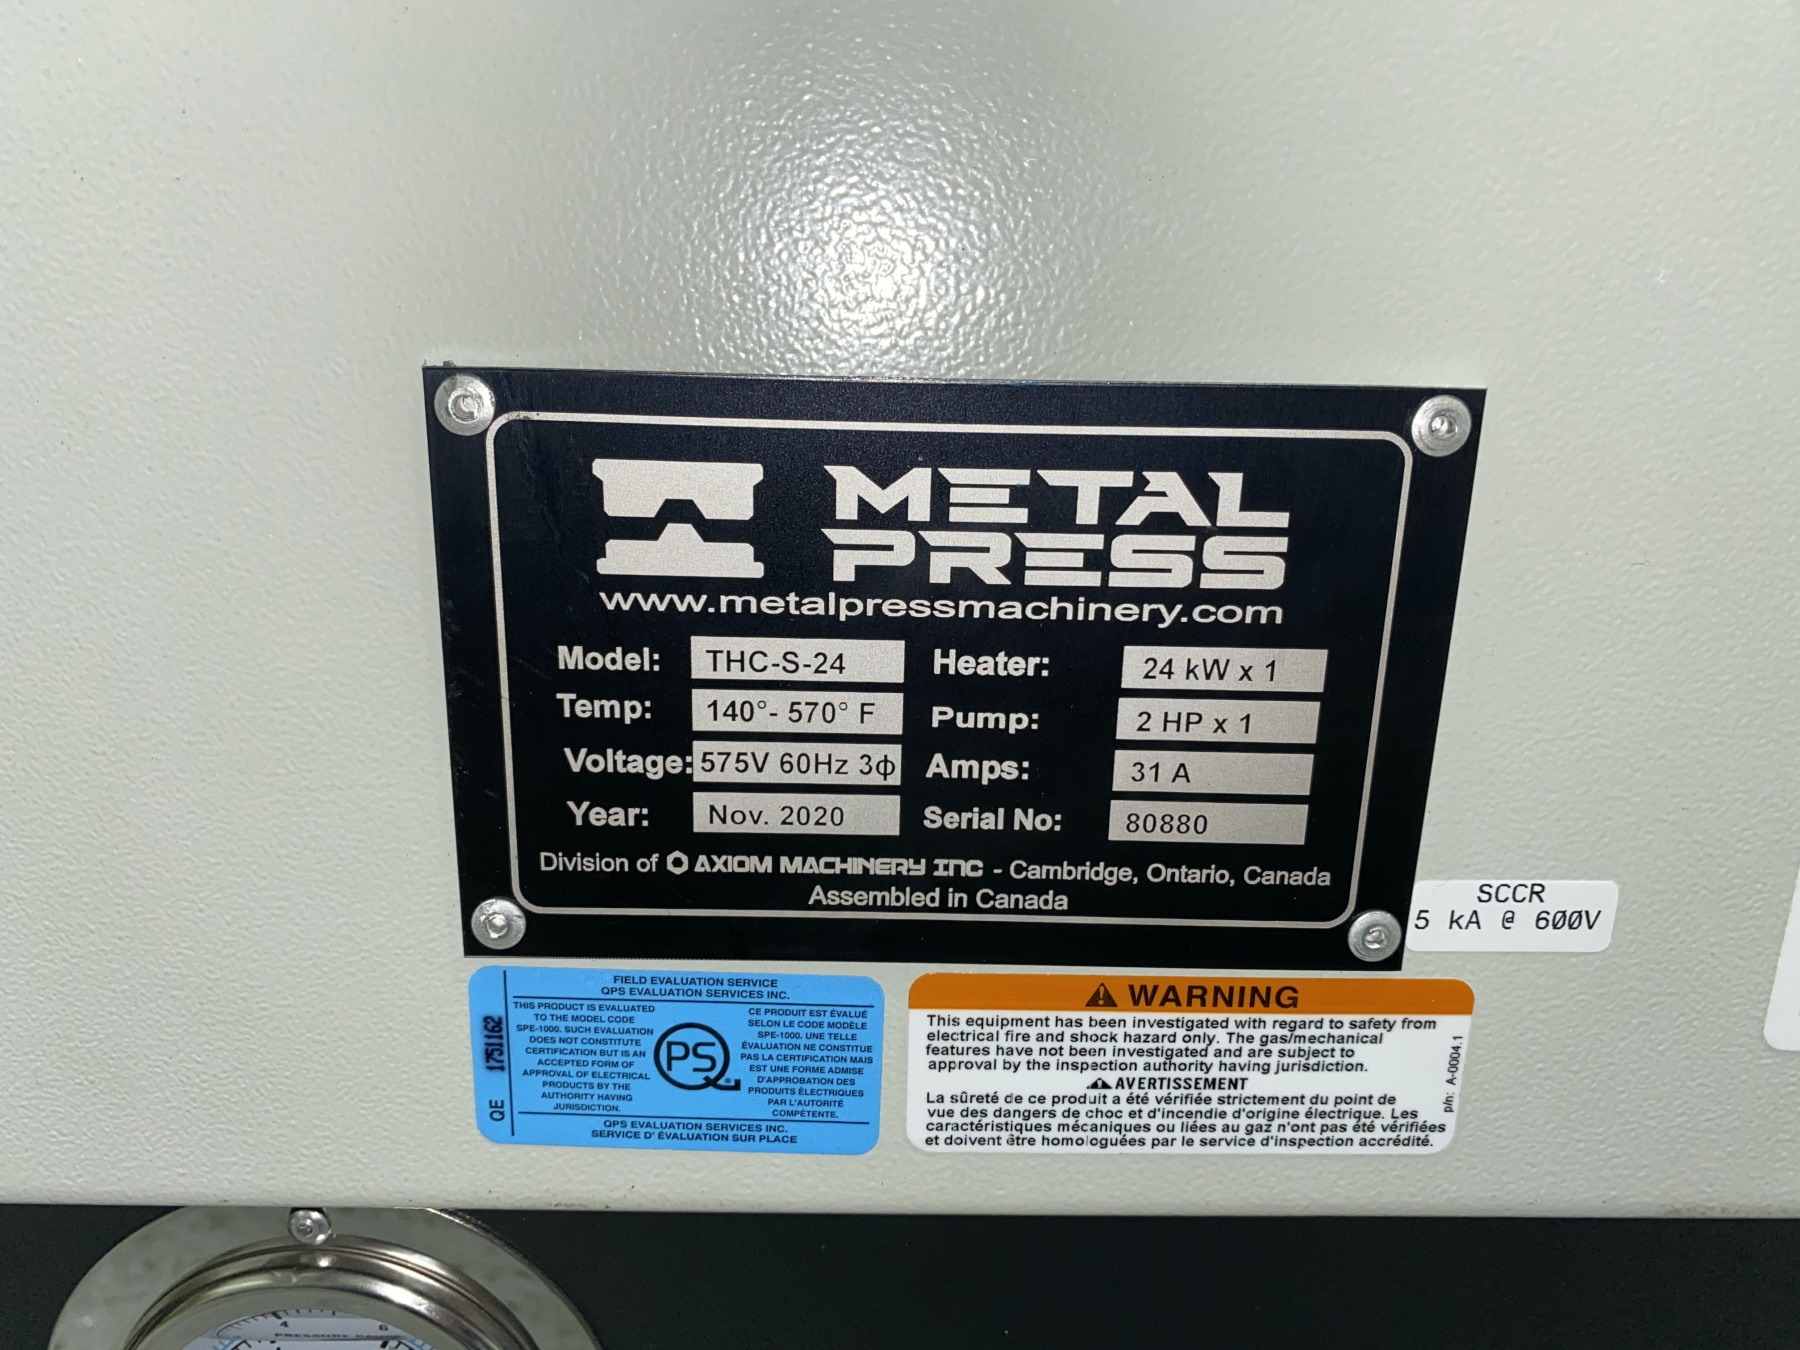 New MetalPress Hot Oil Temperature Control Unit #80880